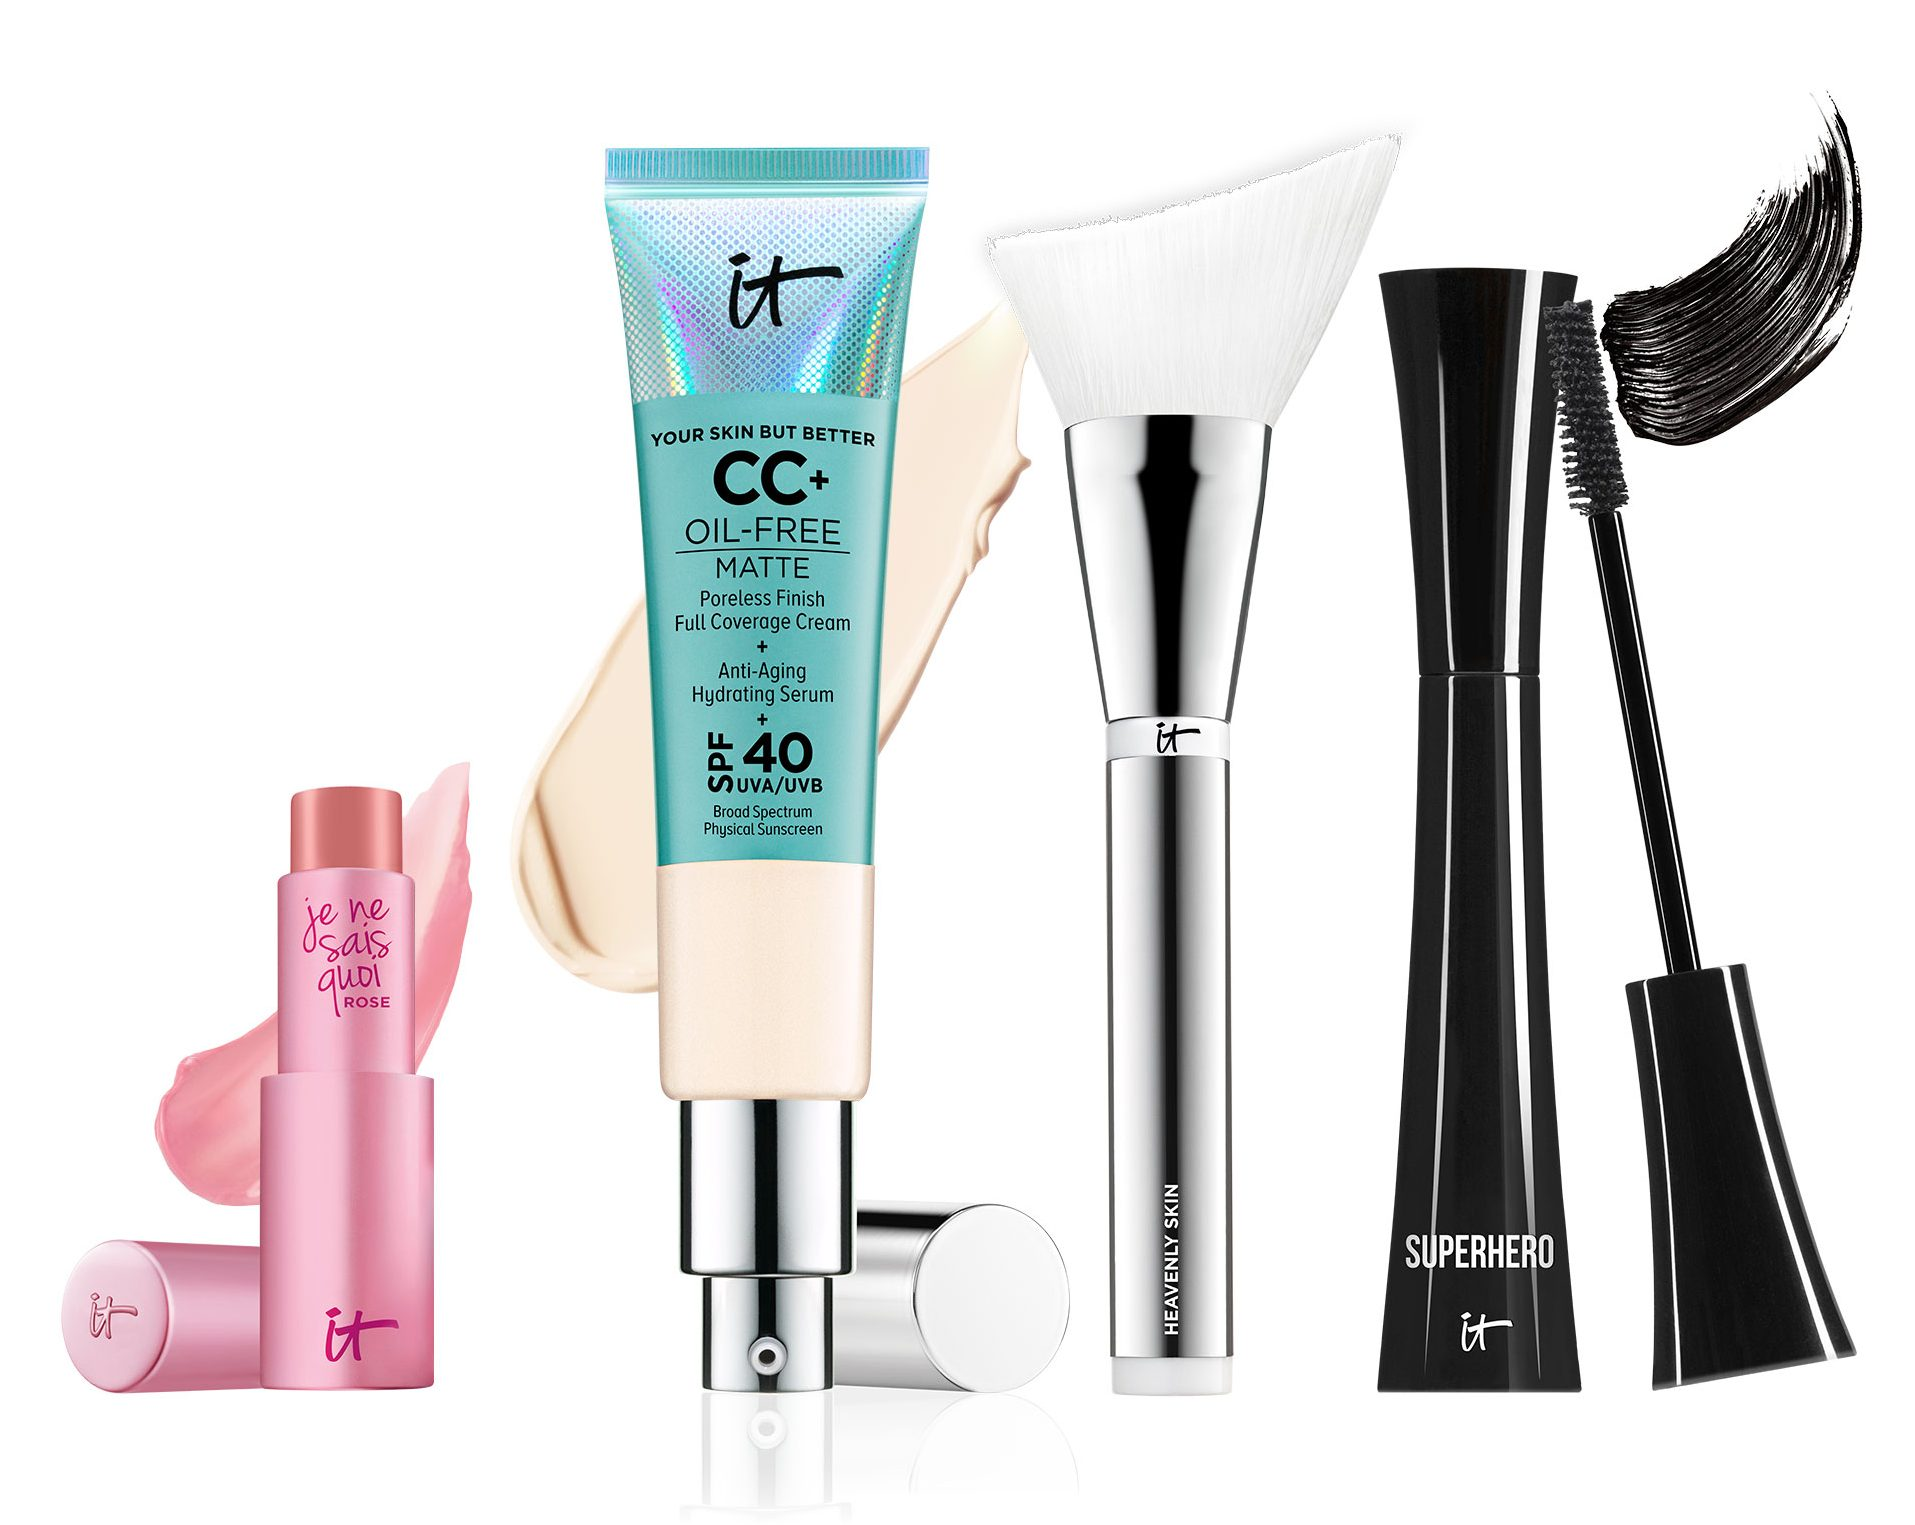 May 2019 IT Cosmetics QVC